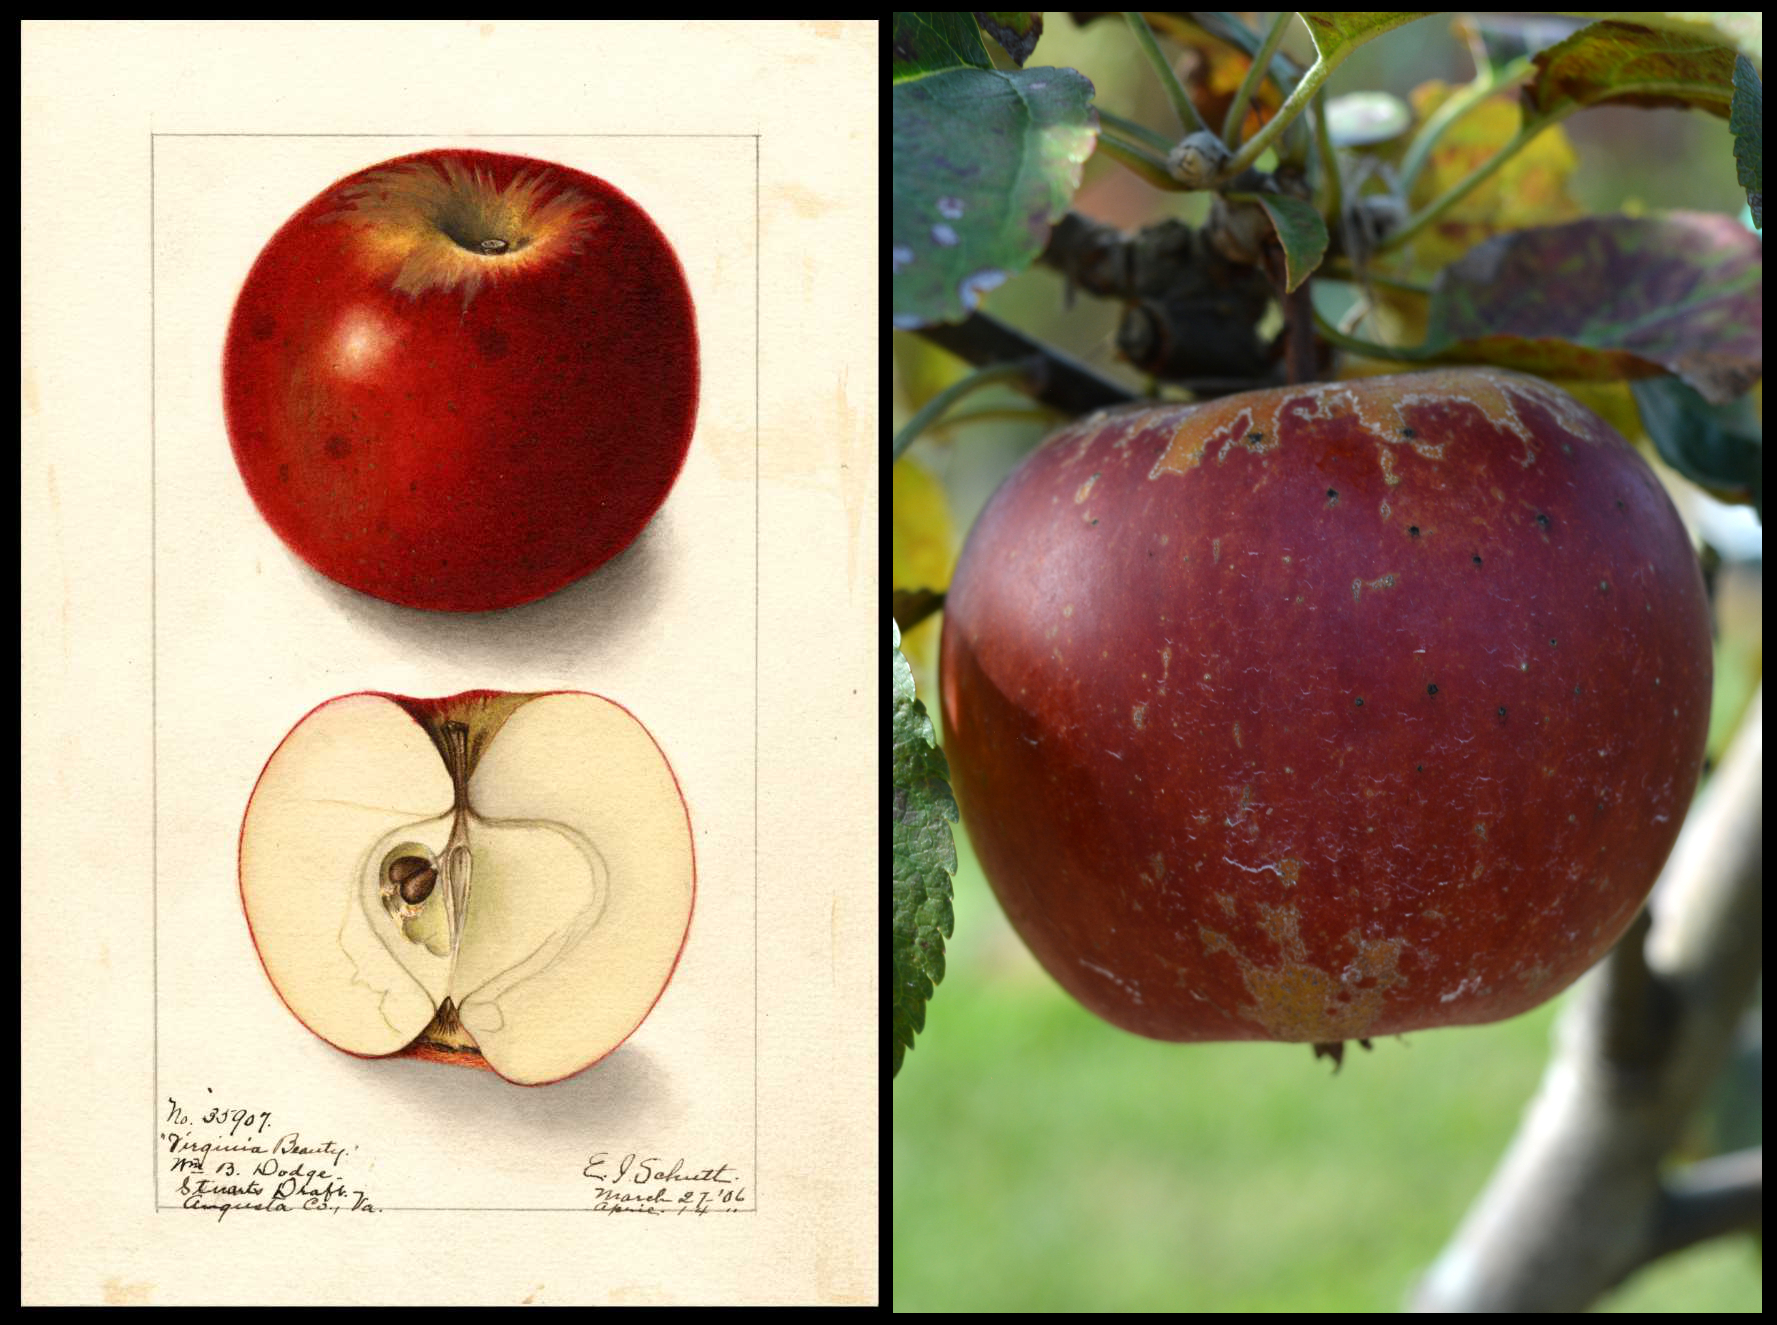 red apple with rough tan skin on the top and bottom of the fruit